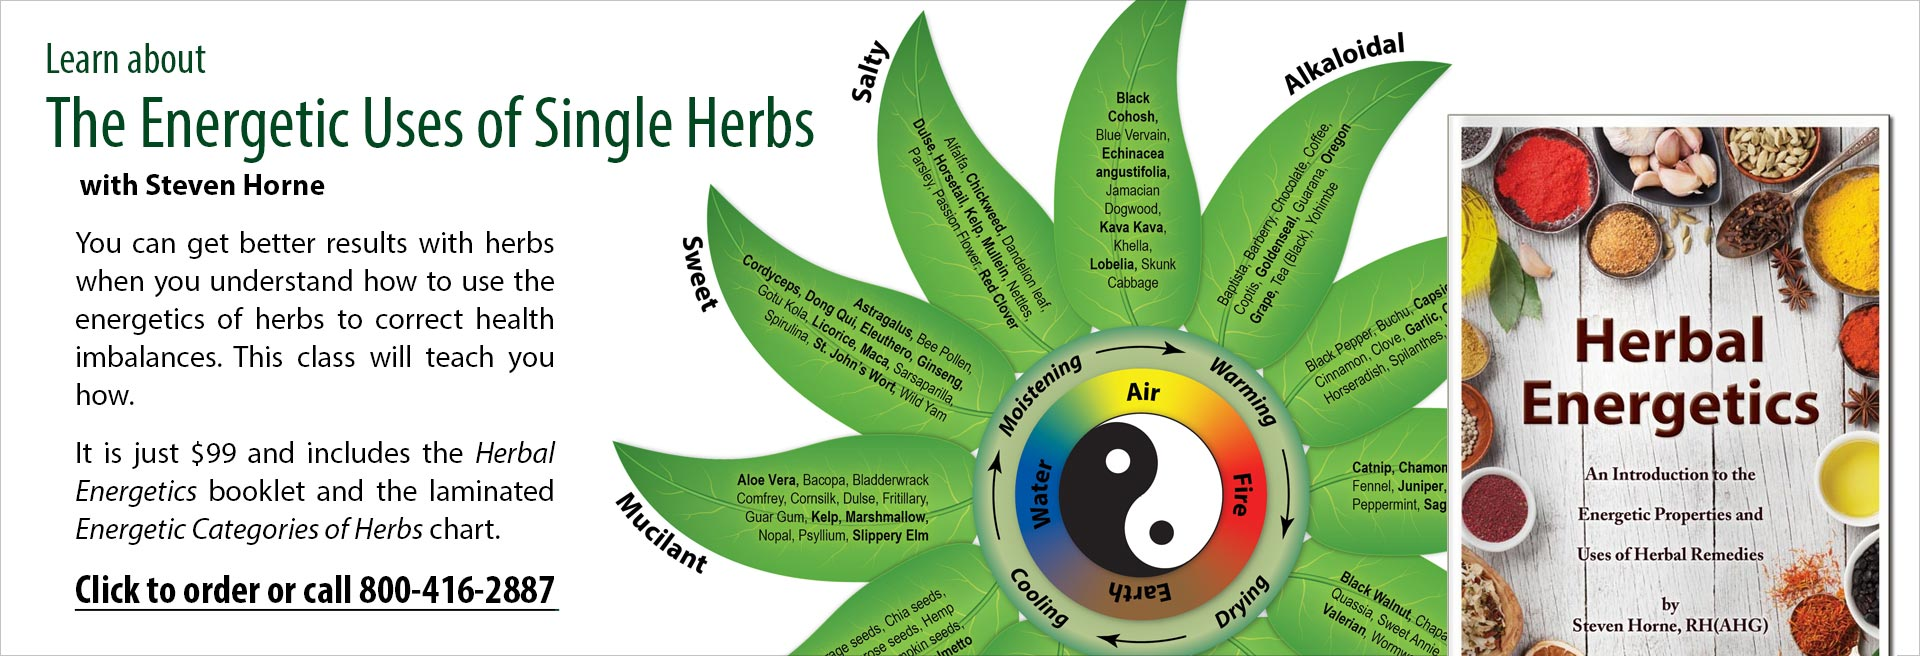 The Energetic Uses of Single Herbs